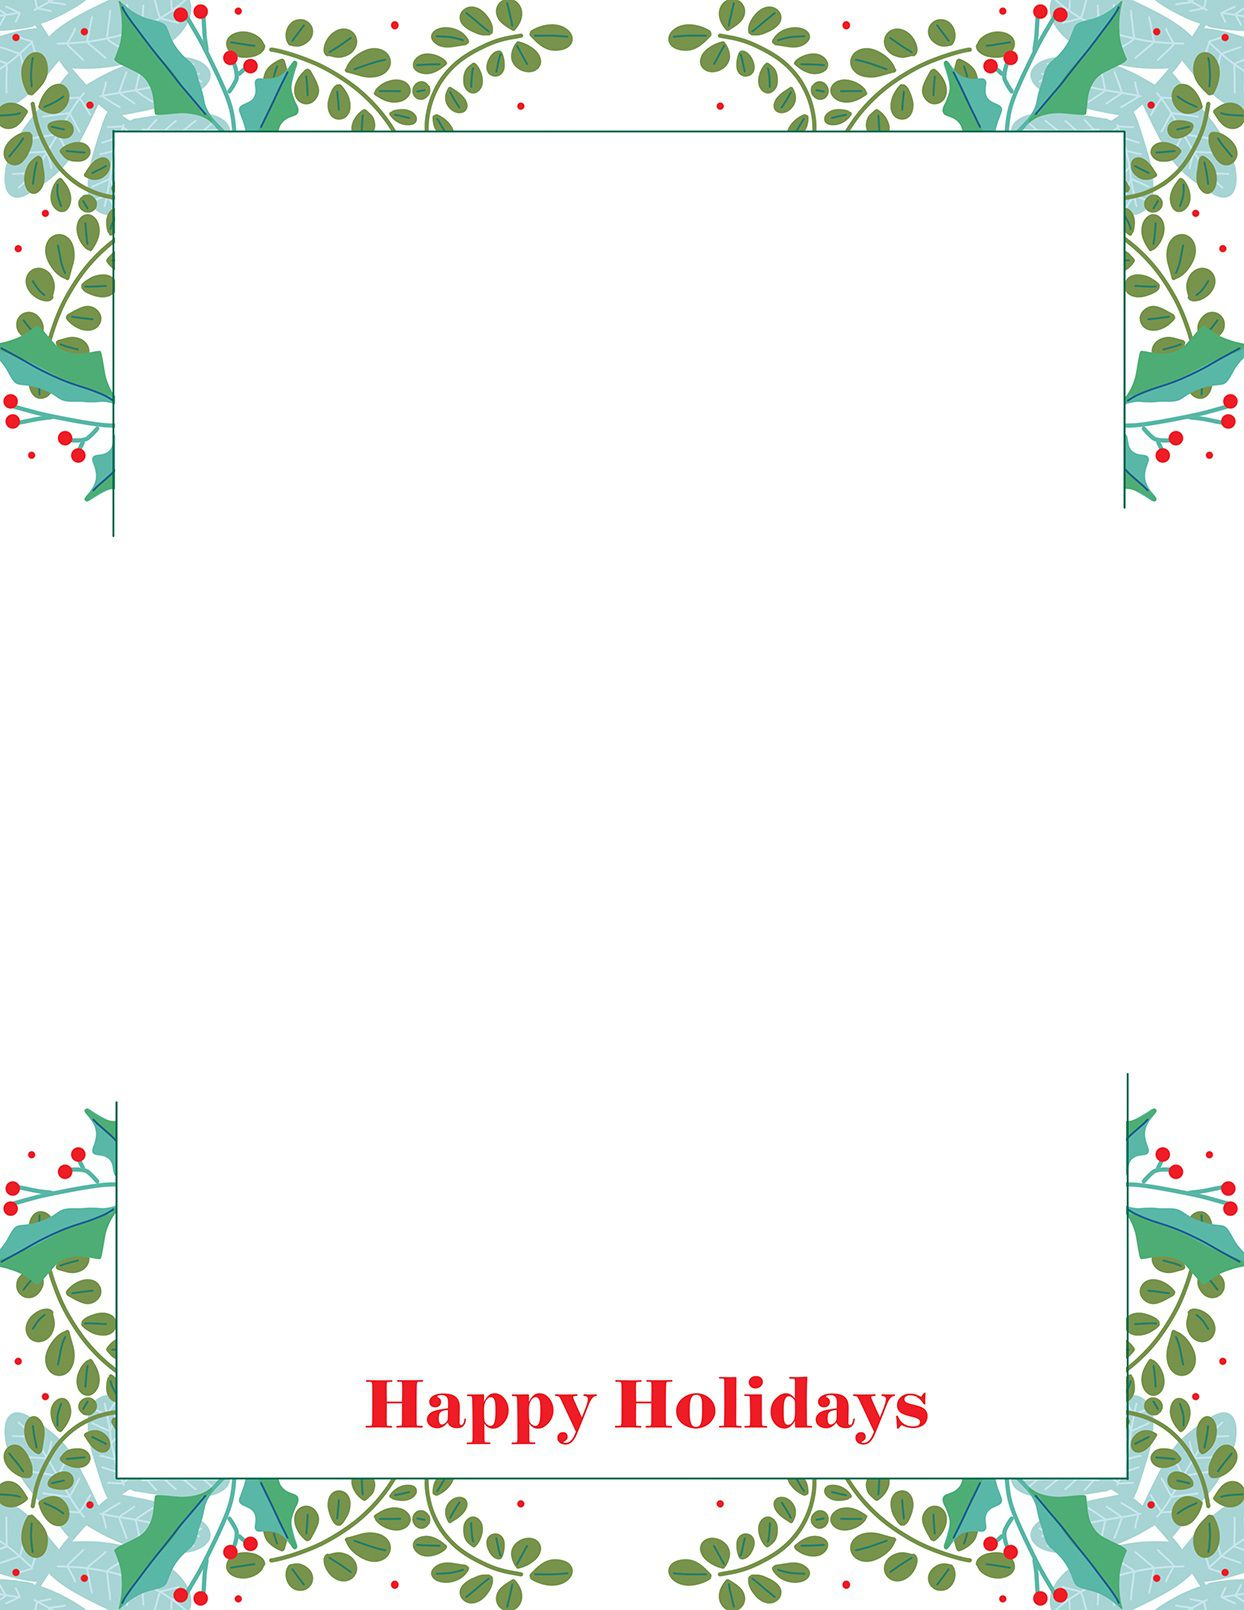 013 Surprising Free Christma Letter Template For Microsoft Word Photo  Downloadable NewsletterFull